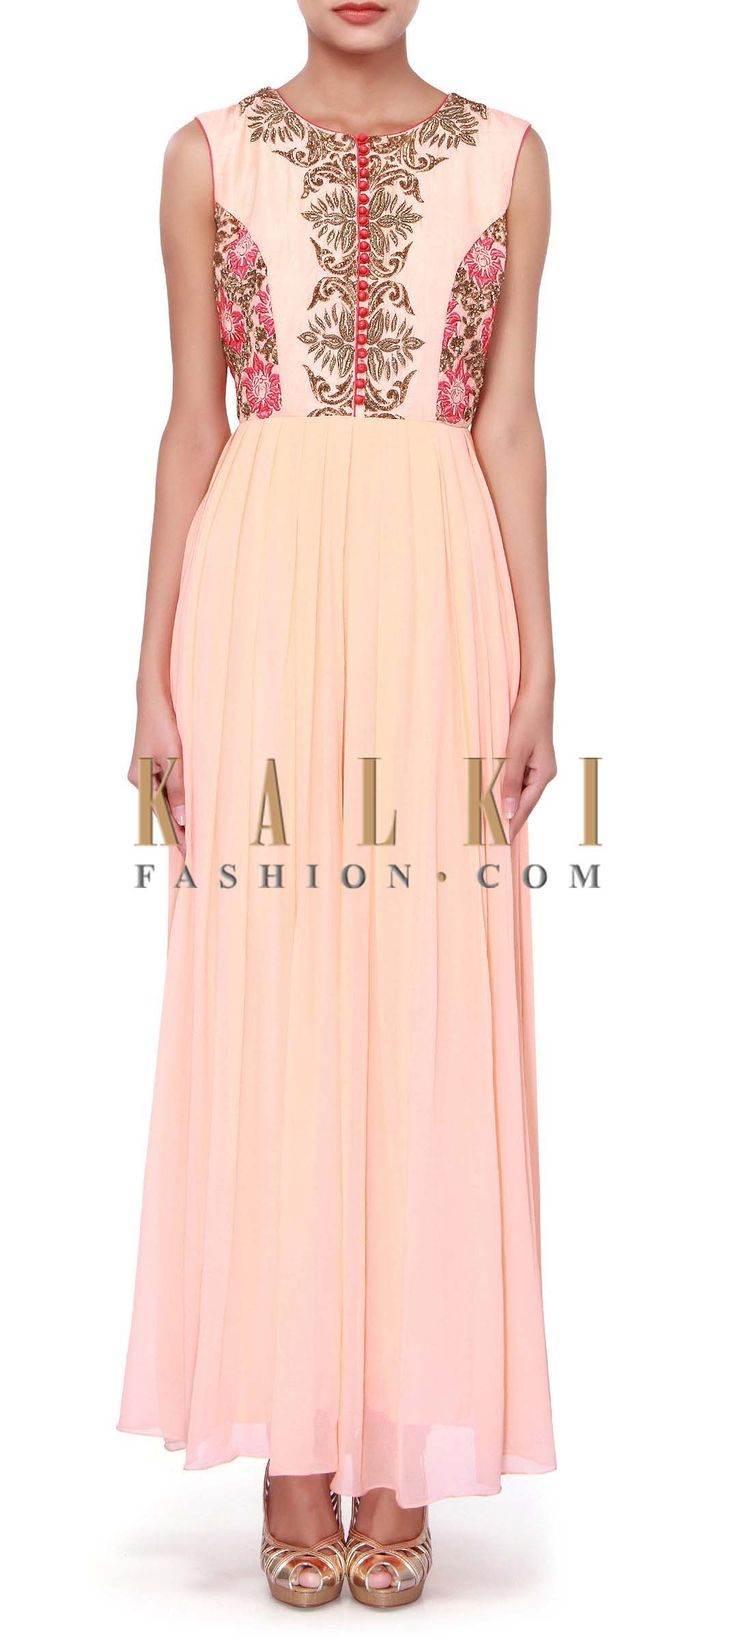 Buy Online from the link below. We ship worldwide (Free Shipping over US$100). Product SKU - 272238. Product Link - http://www.kalkifashion.com/peach-jumpsuit-adorn-in-resham-and-zardosi-embroidery-only-on-kalki.html